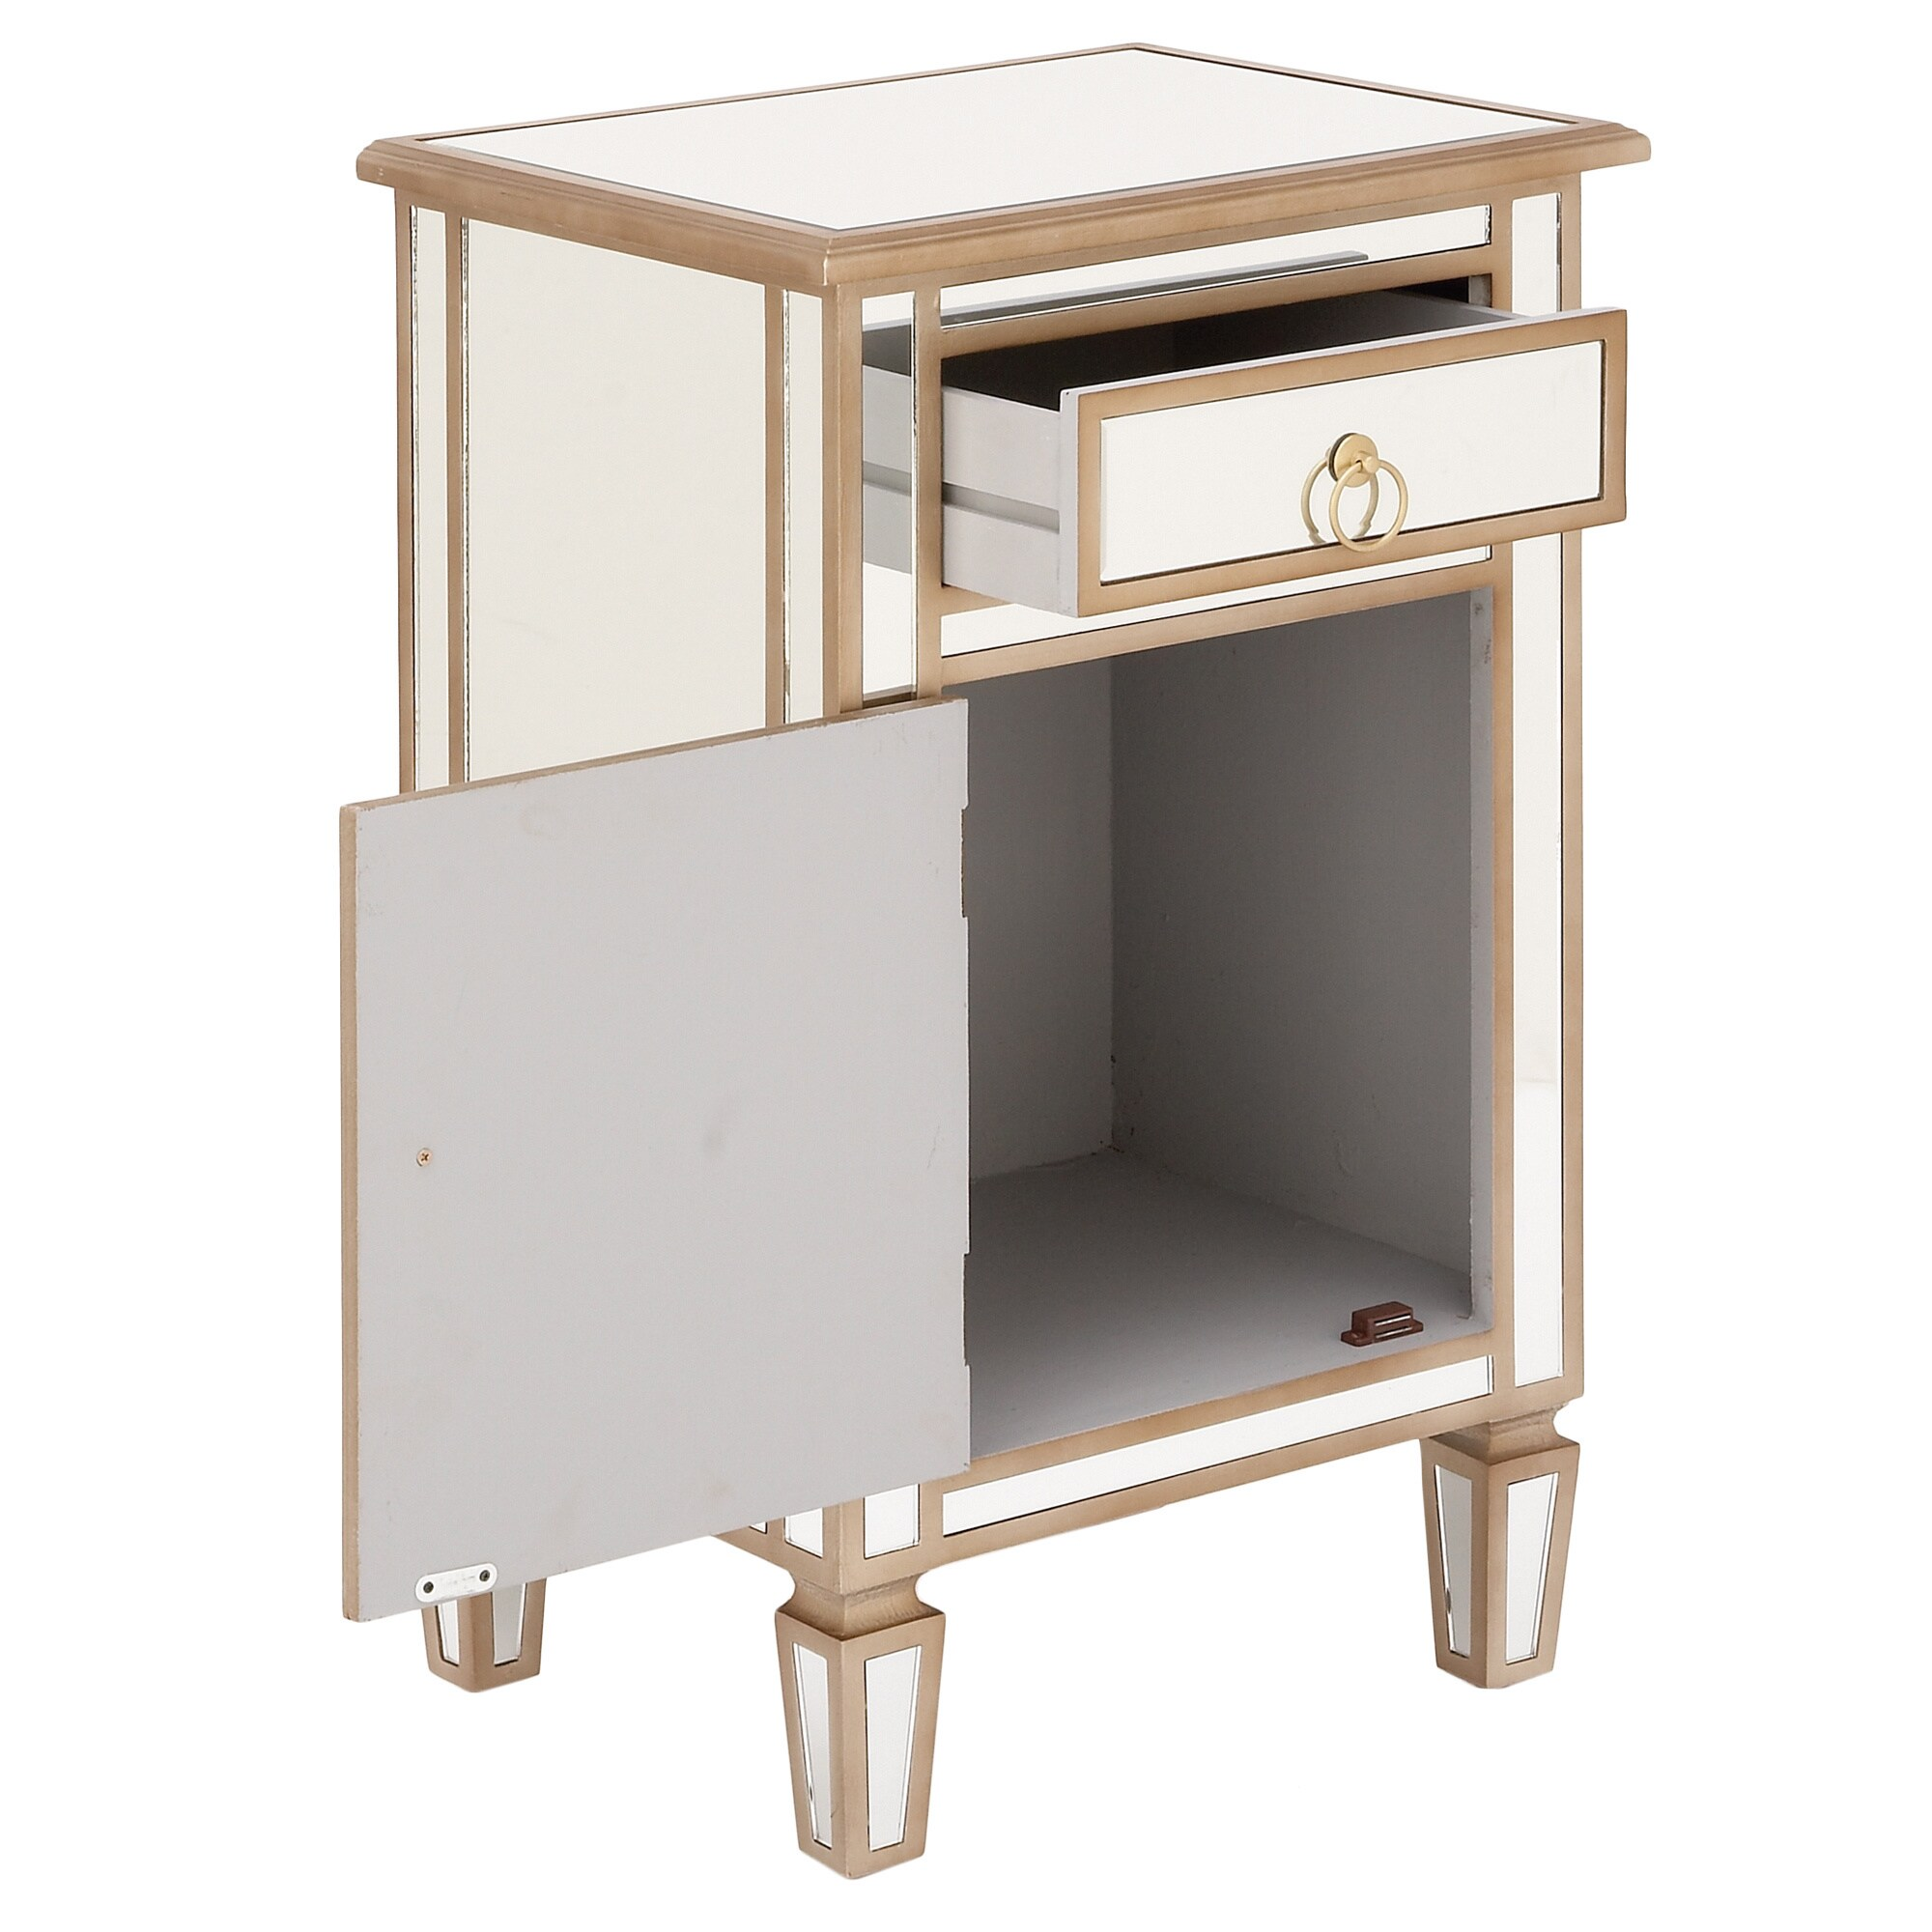 Goldtone Mirrored Cabinet Side Table